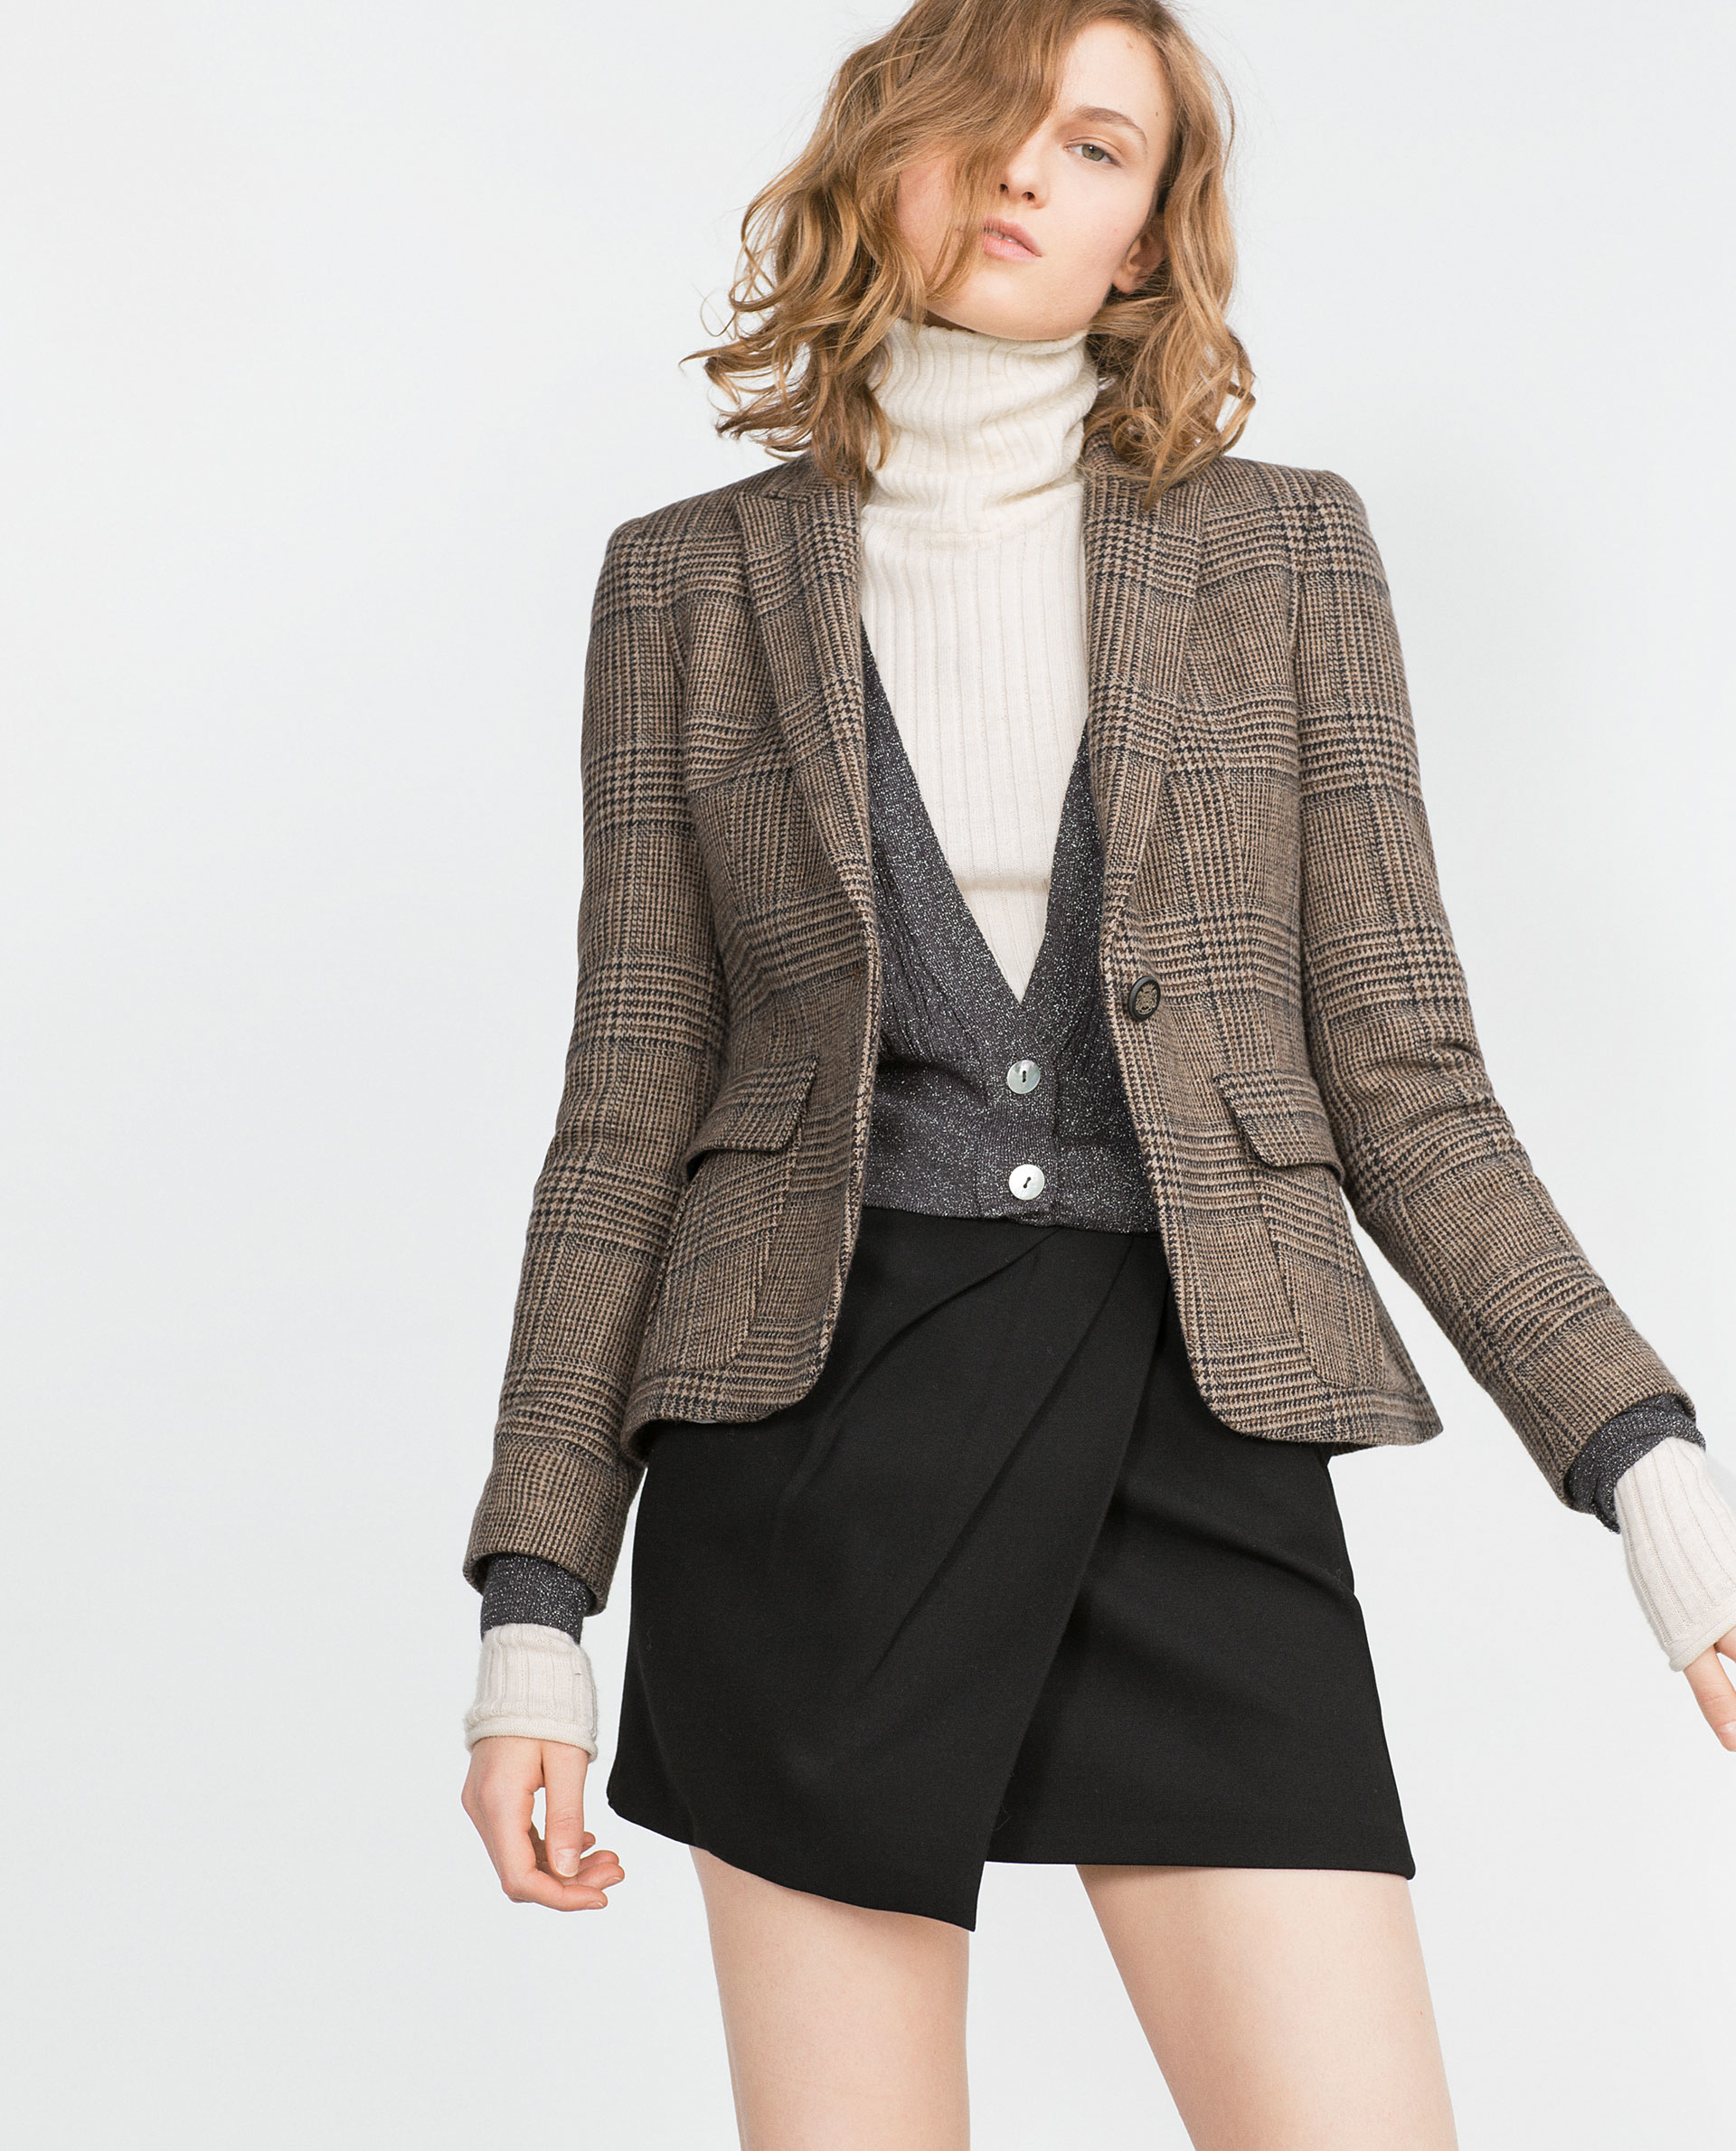 A white blazer, pinstripes or sleeve details will help you make a lasting impression for your big interview, but women's blazers aren't just for the office. Cutaway, classic and boyfriend blazers give any outfit a sleek edge. Try one of our sleeveless styles with a pair of shorts, and wear it out on date night.